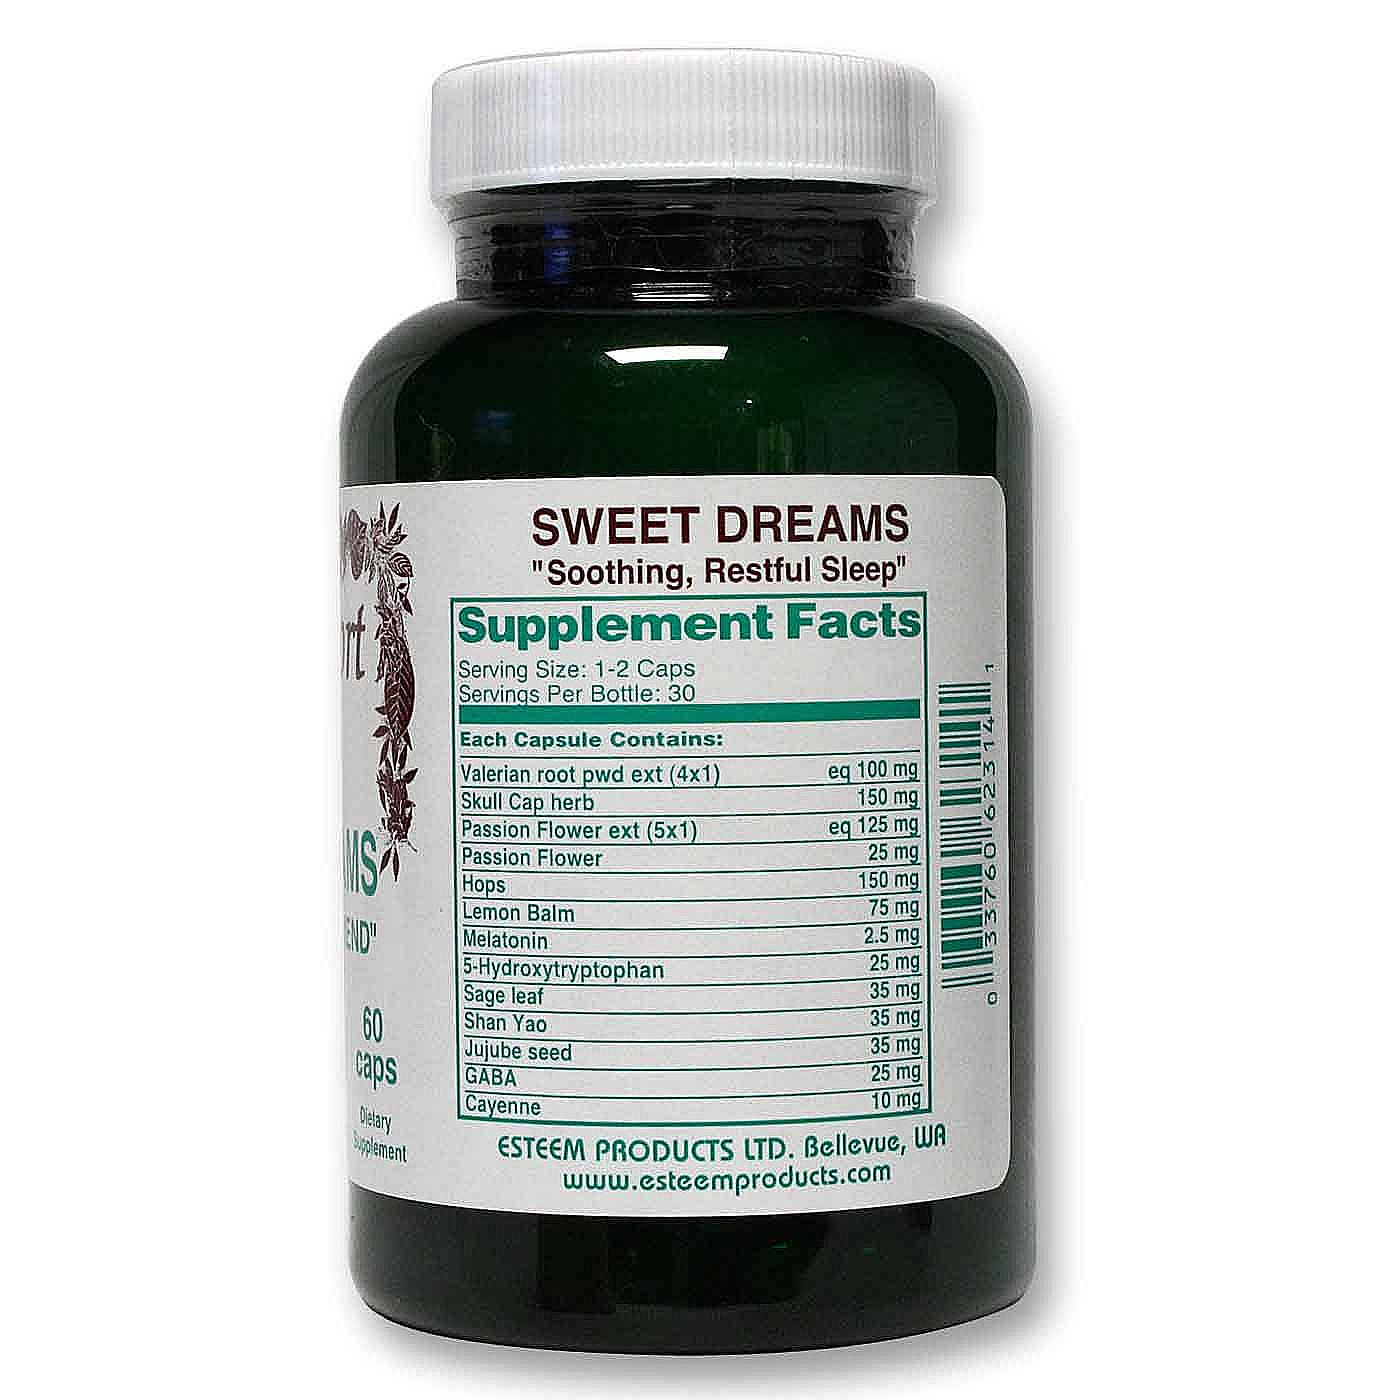 Esteem Sweet Dreams - 60 Capsules